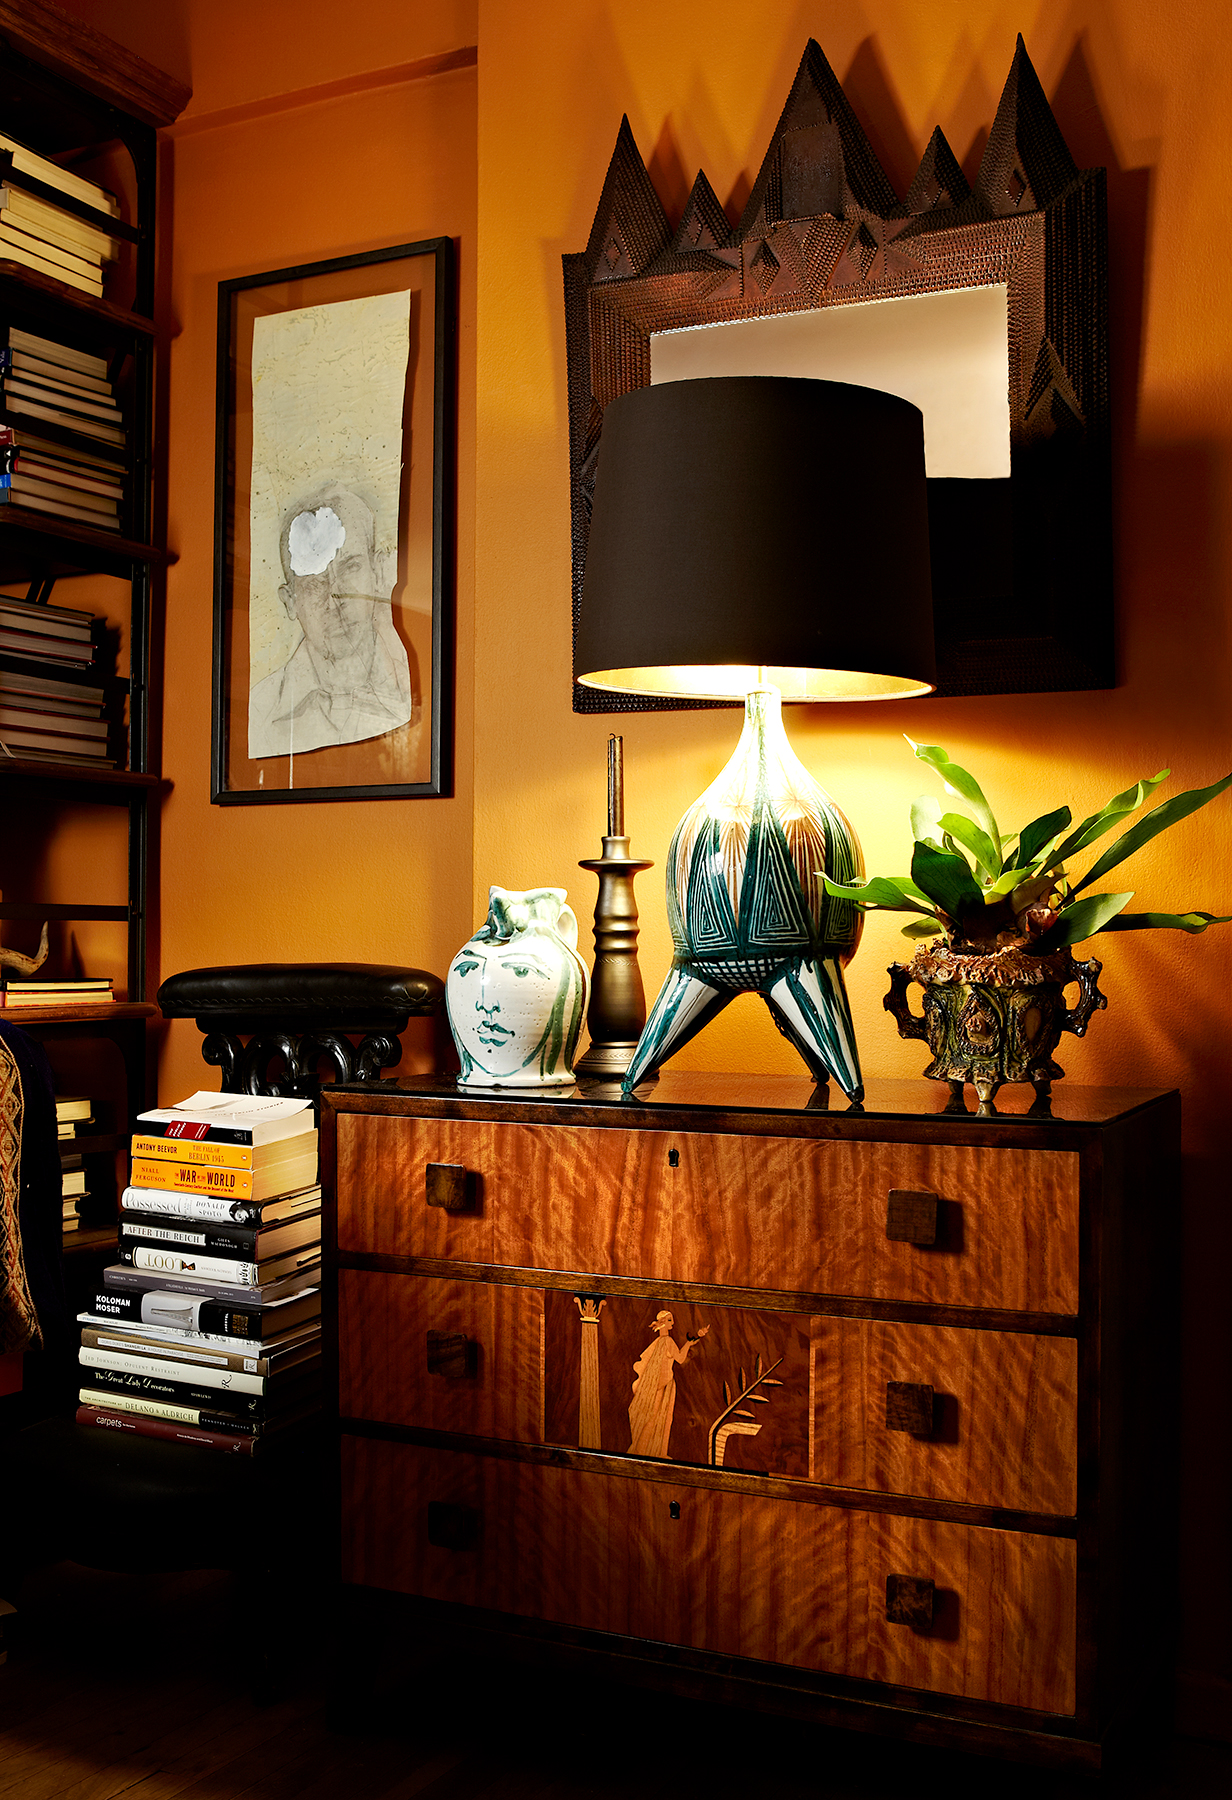 """Benjamin Moore's Autumn Orange (#2156-10)  """"This color is a personal favorite. It has enough brown to keep it from being punchy, but it still reflects warmly. It's the color I painted my own apartment, and the glow it provides makes everyone's skin looks amazing.""""  Christopher Stevens"""